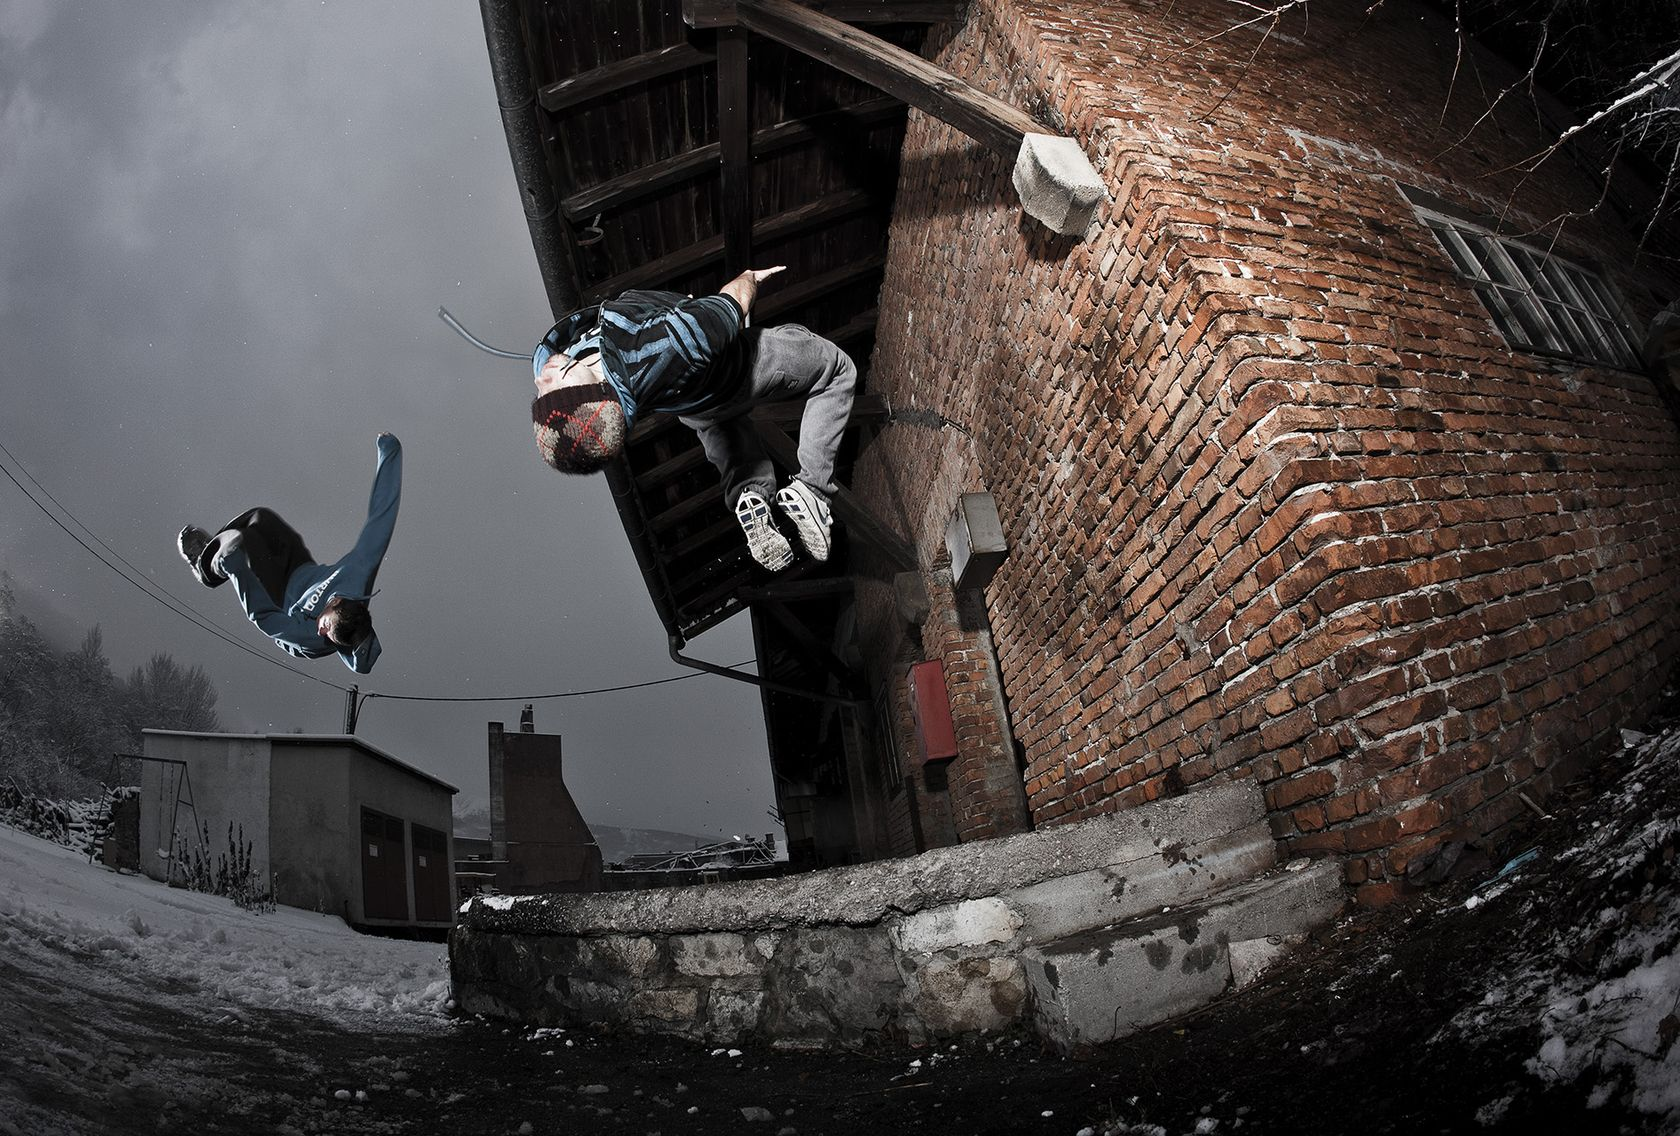 Free Runners mid-flip by photographer Christian Vorhofer